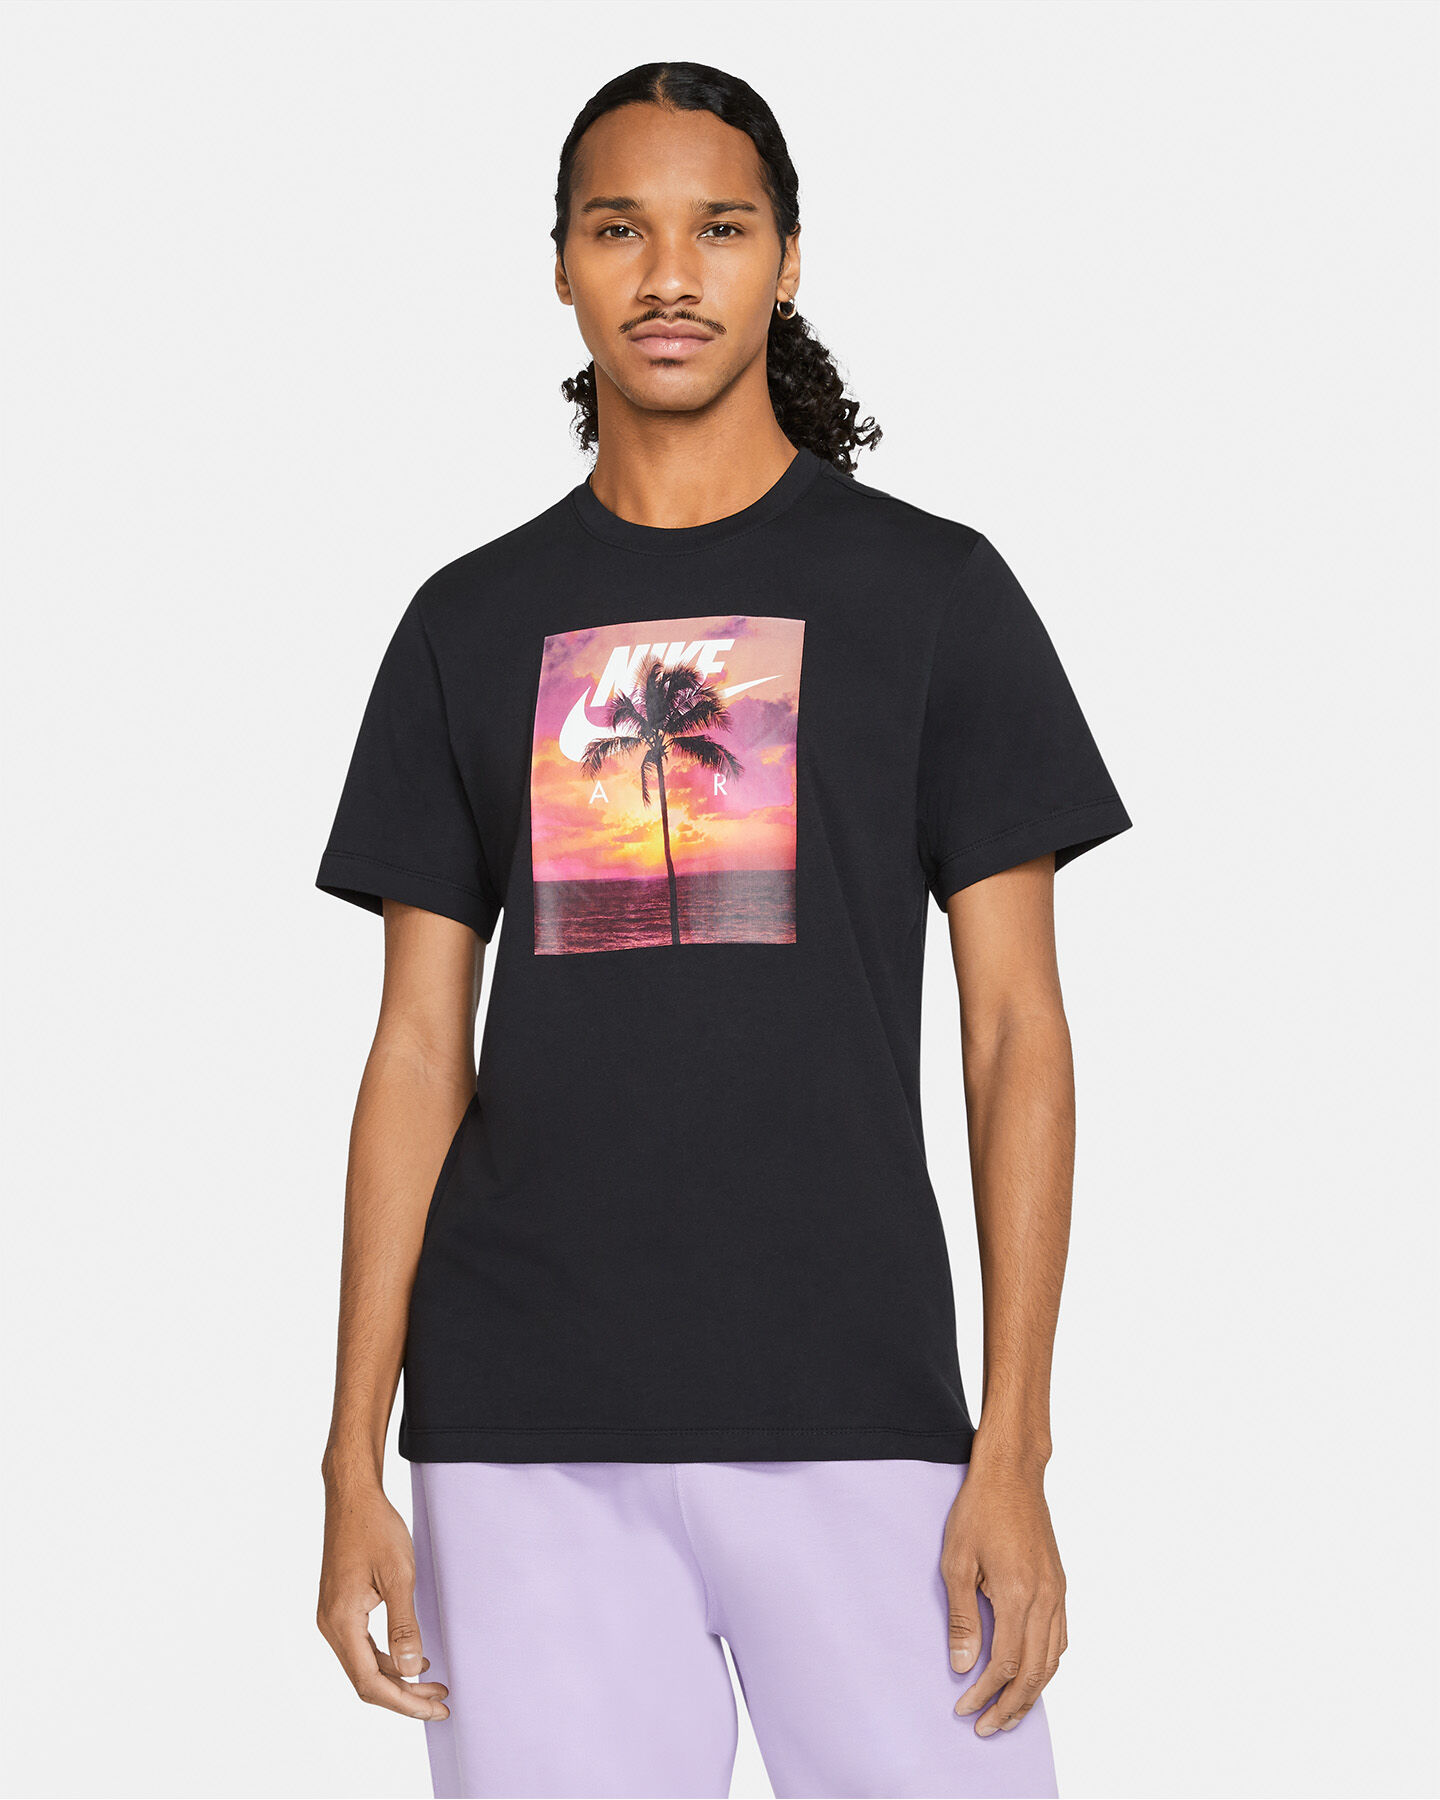 T-Shirt NIKE SPRING PHOTO PALM M S5270121 scatto 0